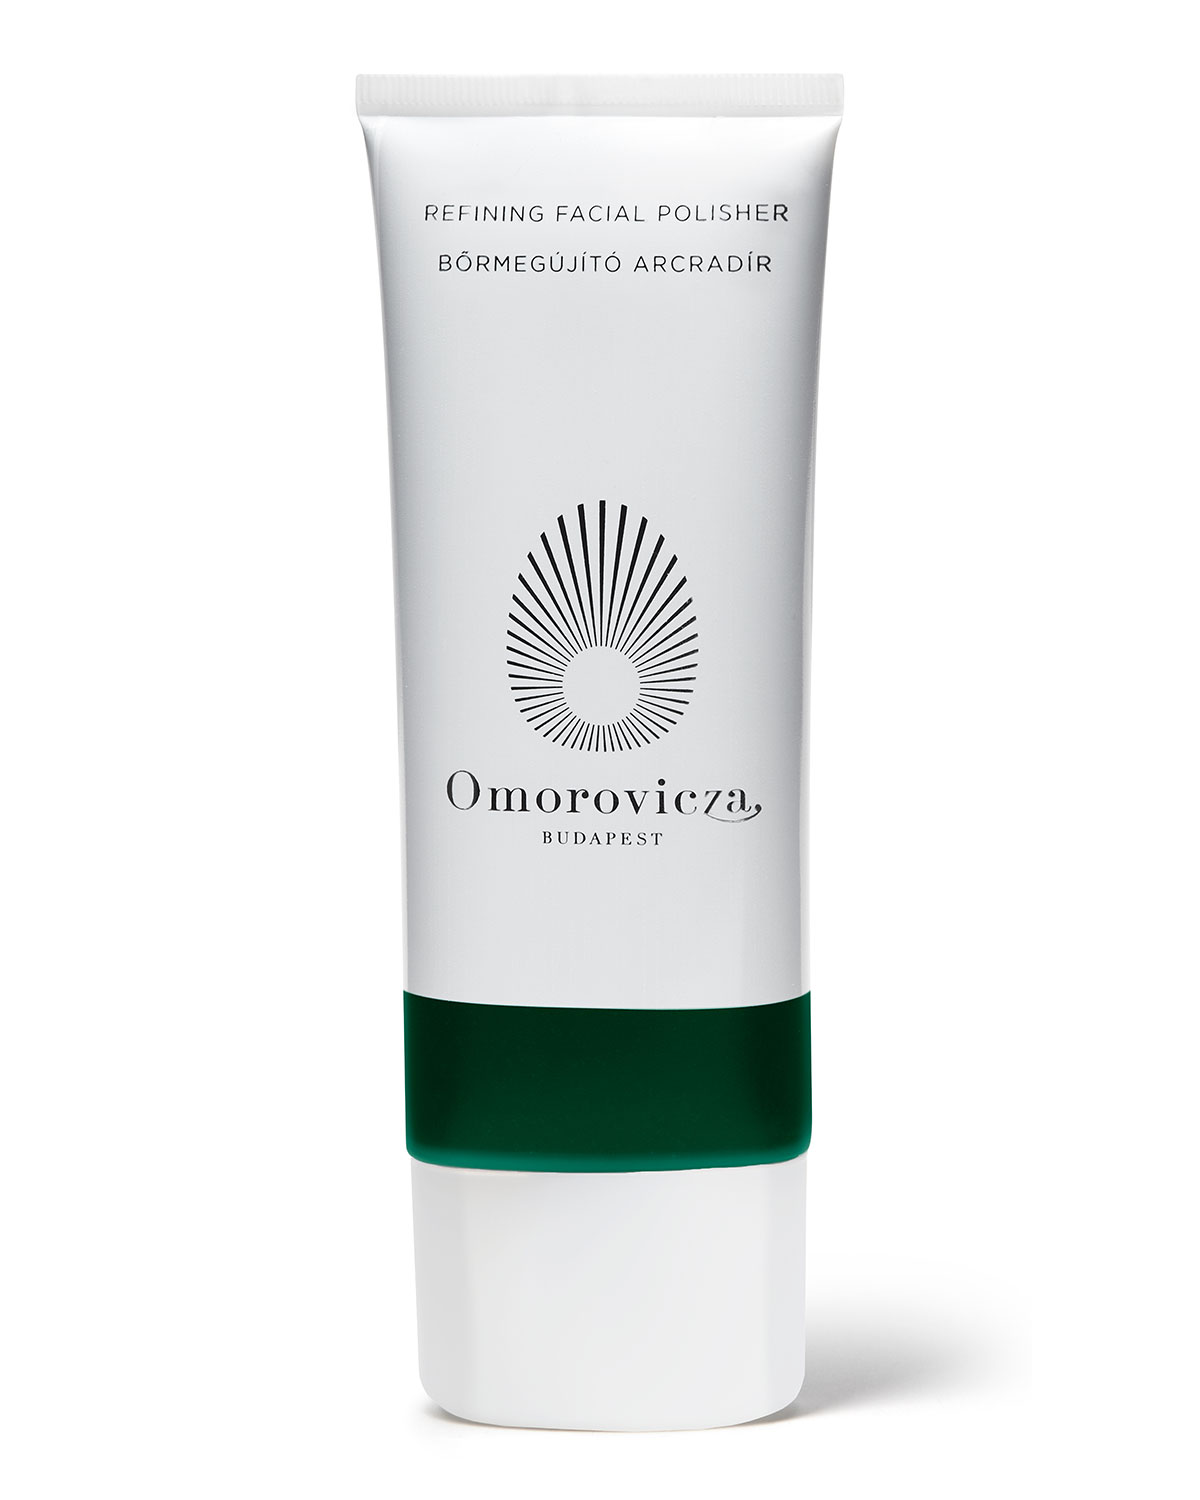 OMOROVICZA Refining Facial Polisher 3.5 Oz/ 104 Ml